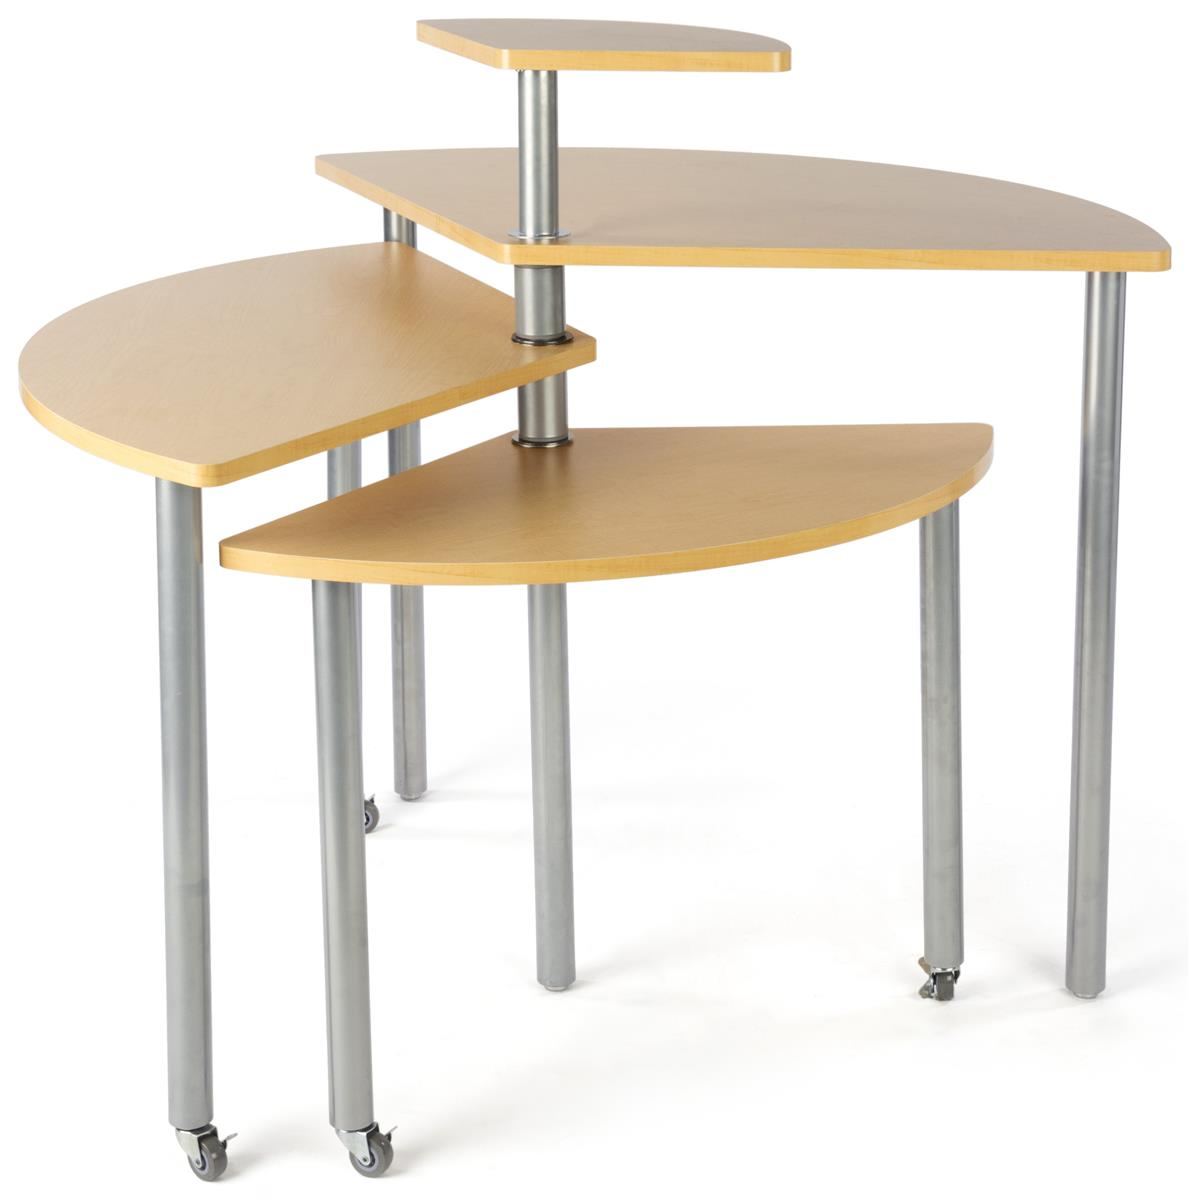 Maple rotating retail display table 4 tiers for Display table